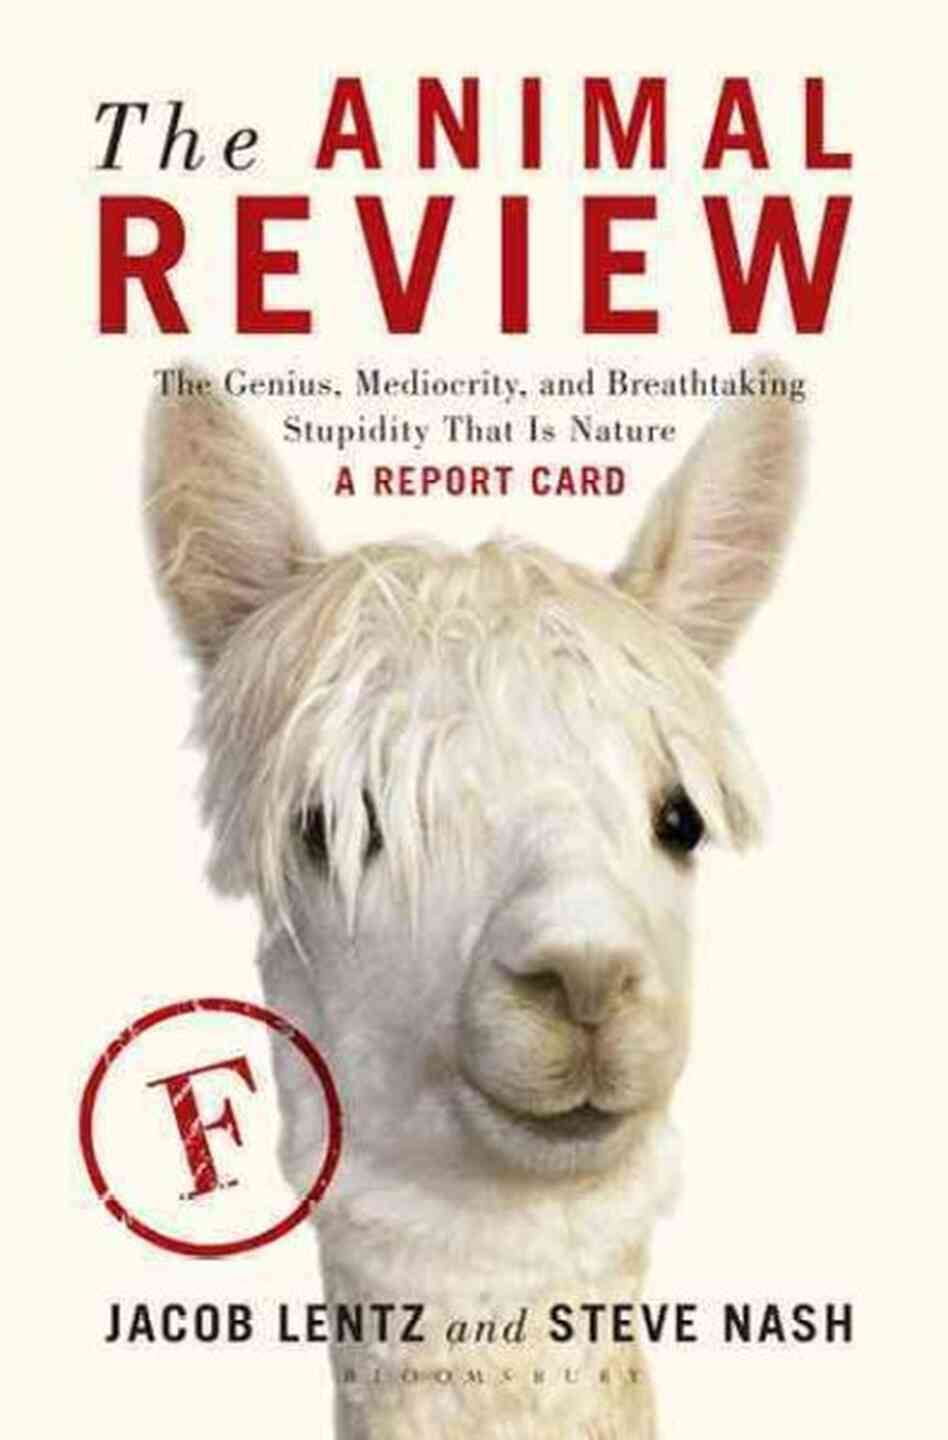 The Animal Review